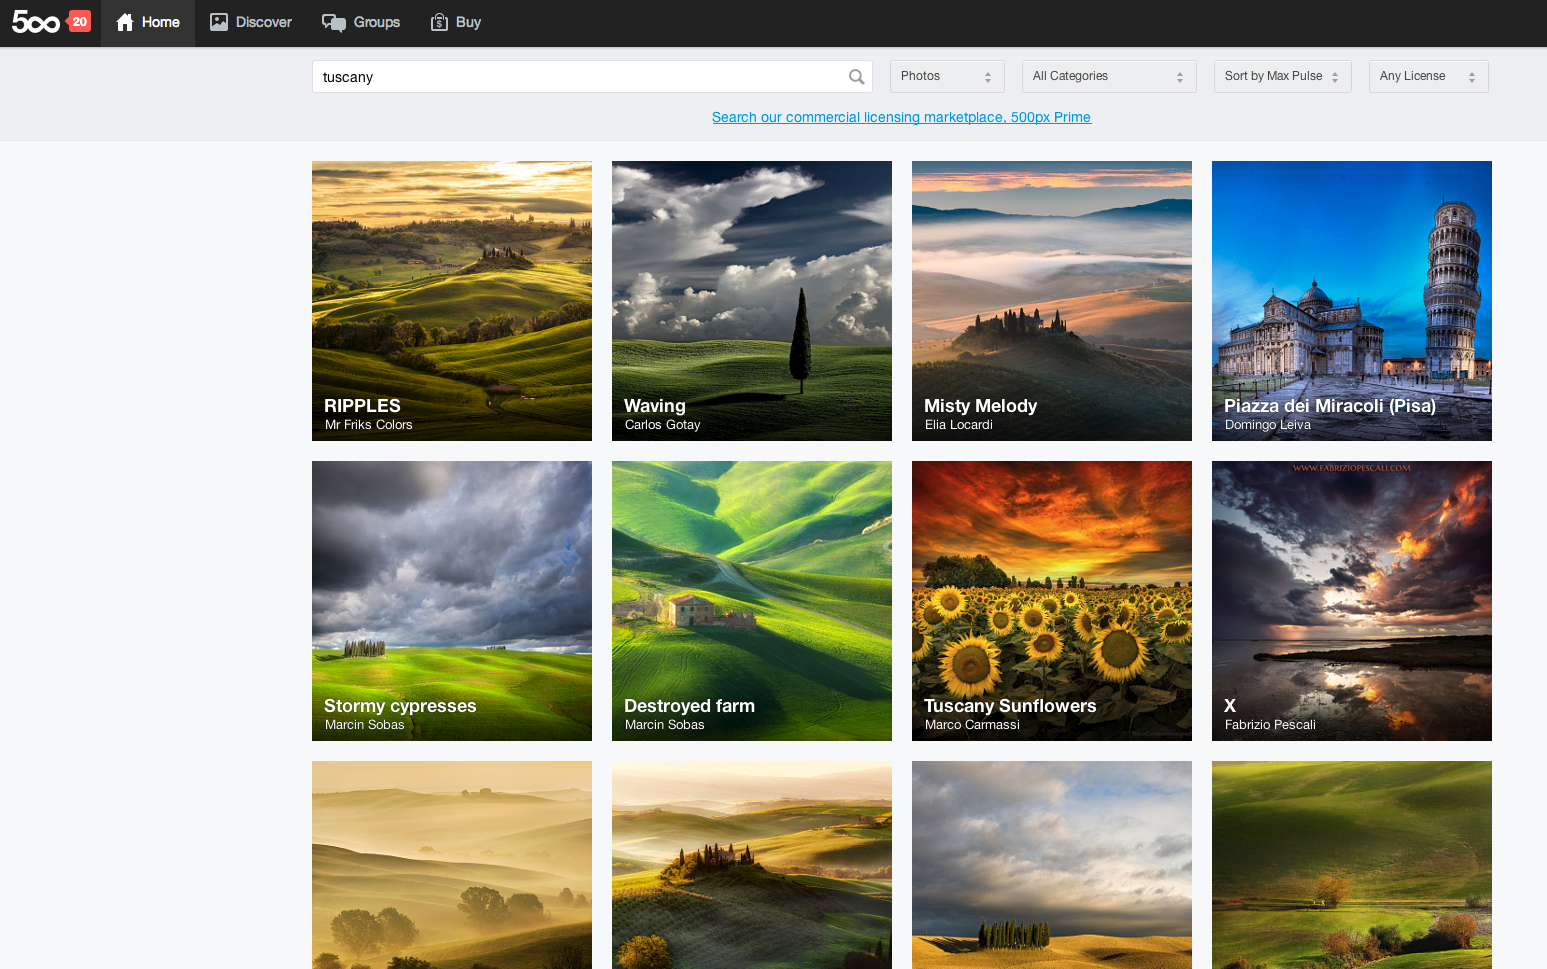 A search on 500px for photos of Tuscany.